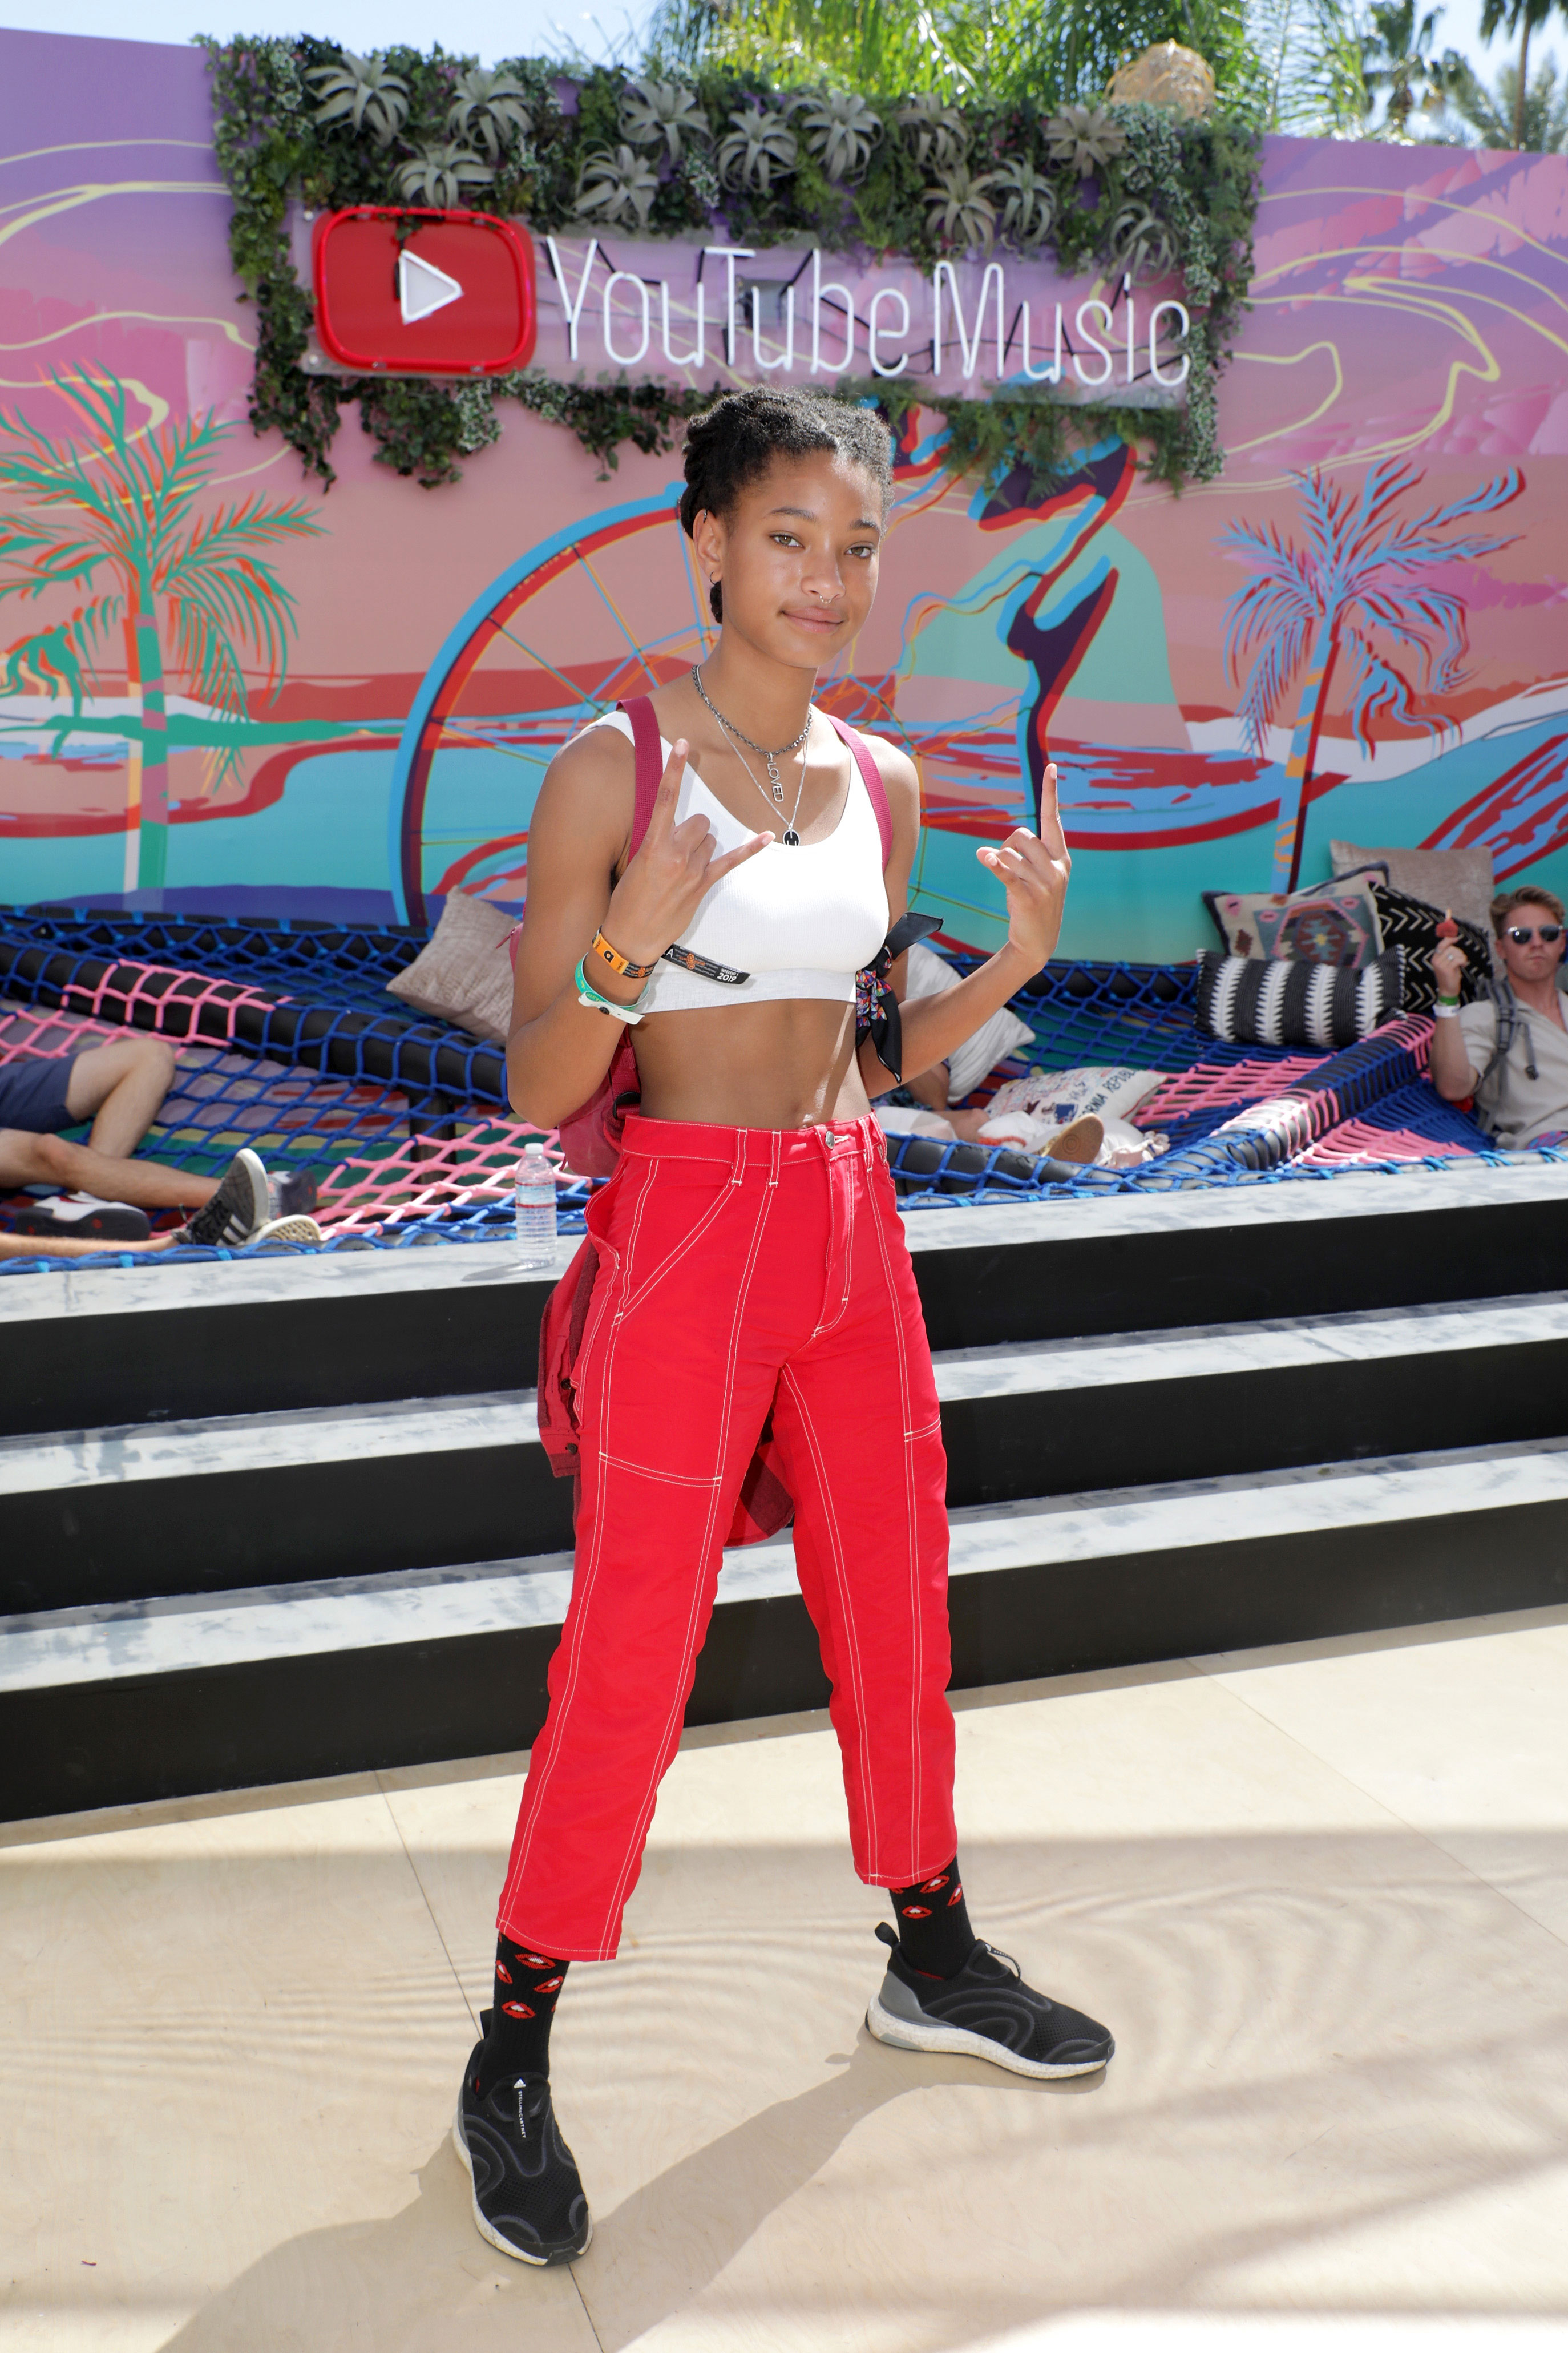 Willow Smith Coachella 2019 - The singer, whose brother Jaden Smith performed on Friday, April 12, was spotted at the YouTube Music Artist Lounge.